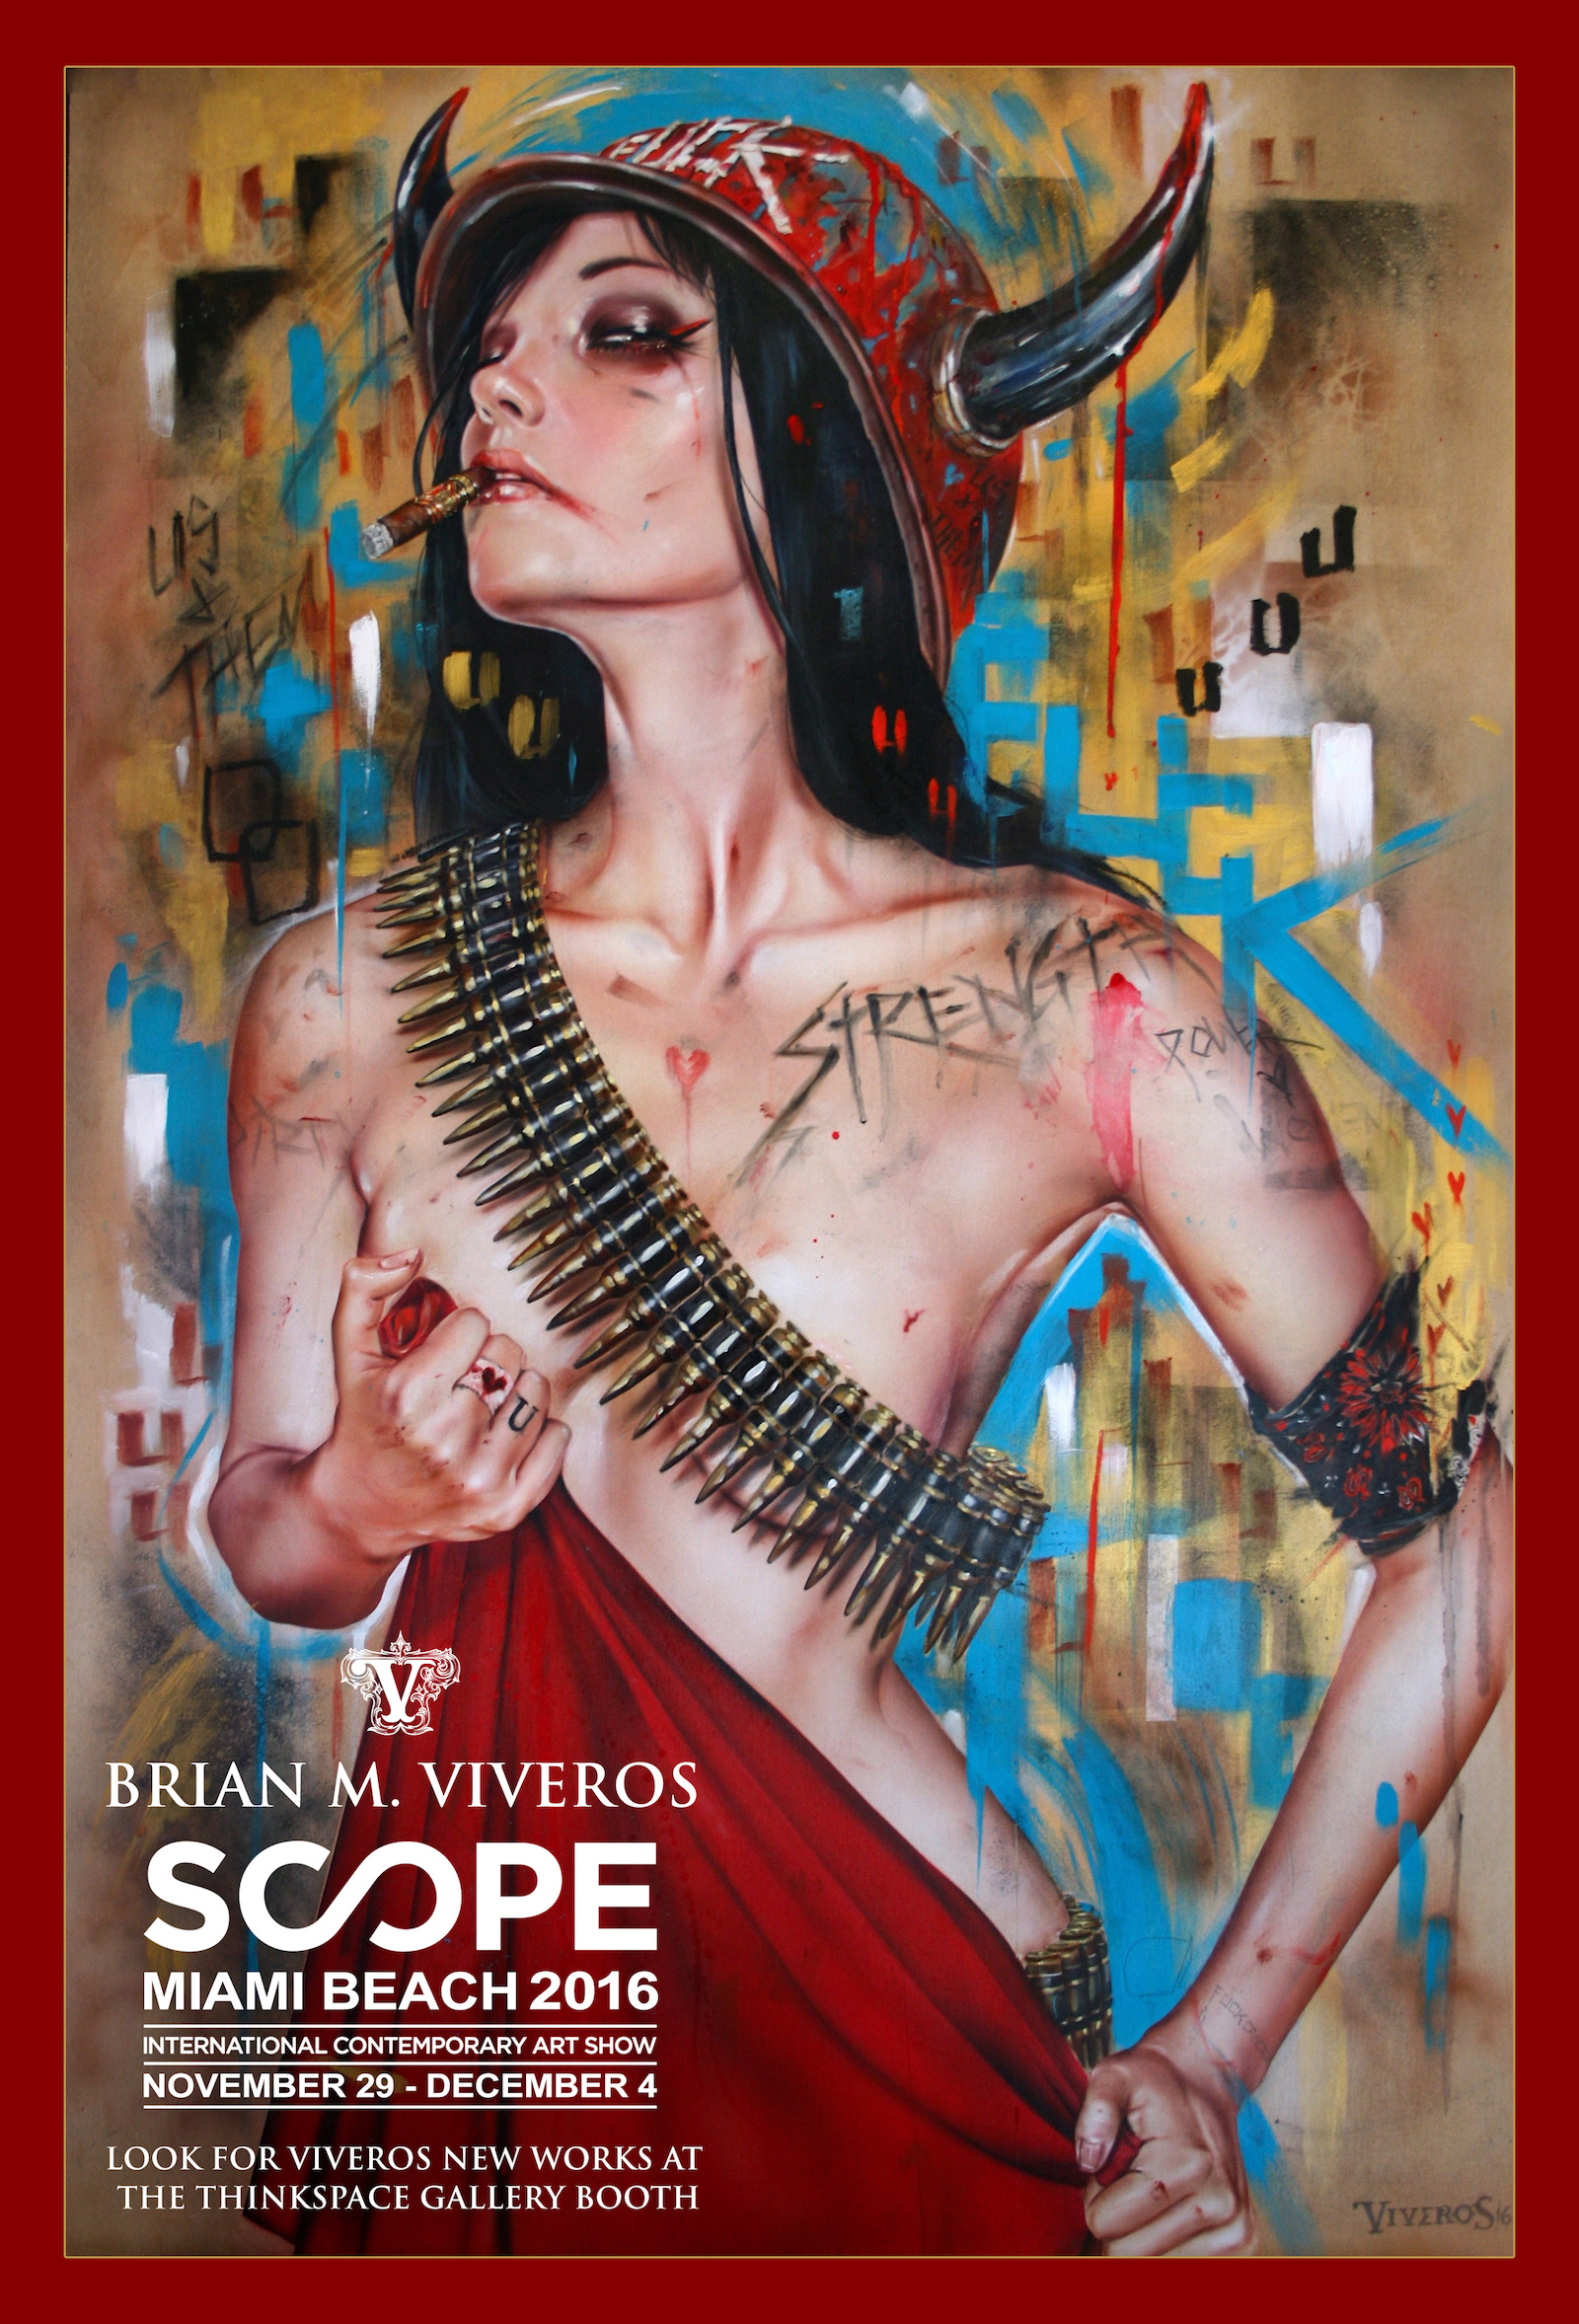 viveros_scope-image_1